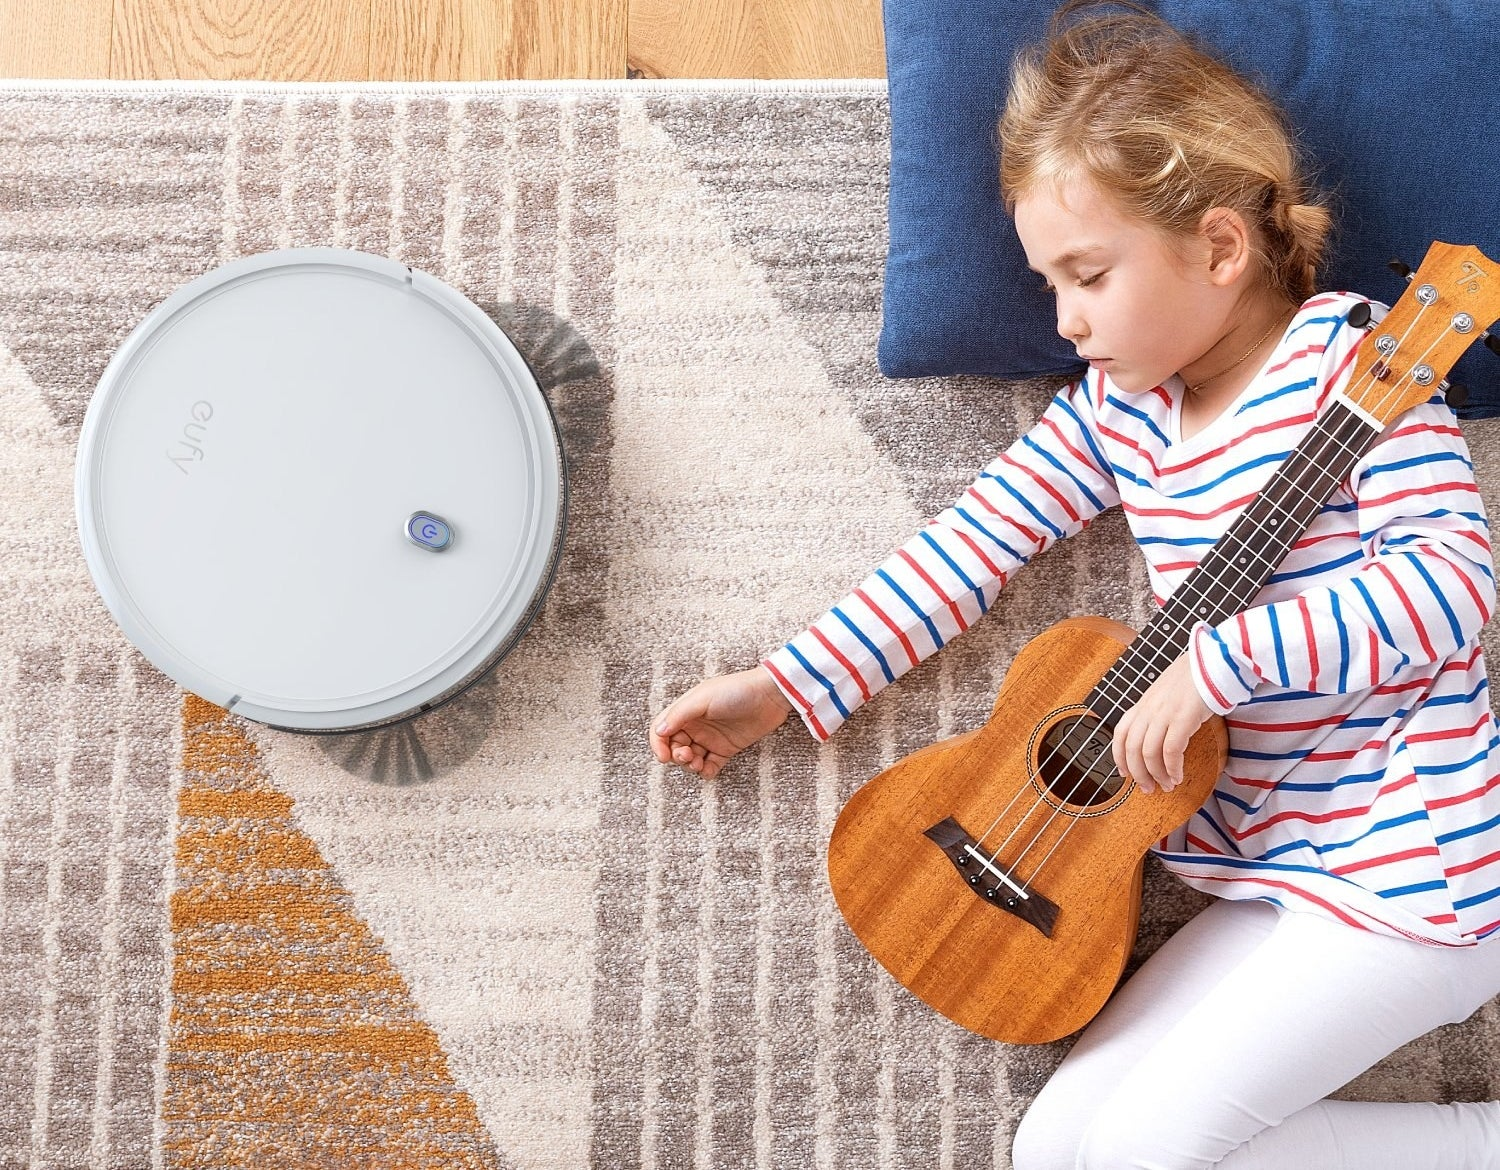 The robot vacuum next to a sleeping child